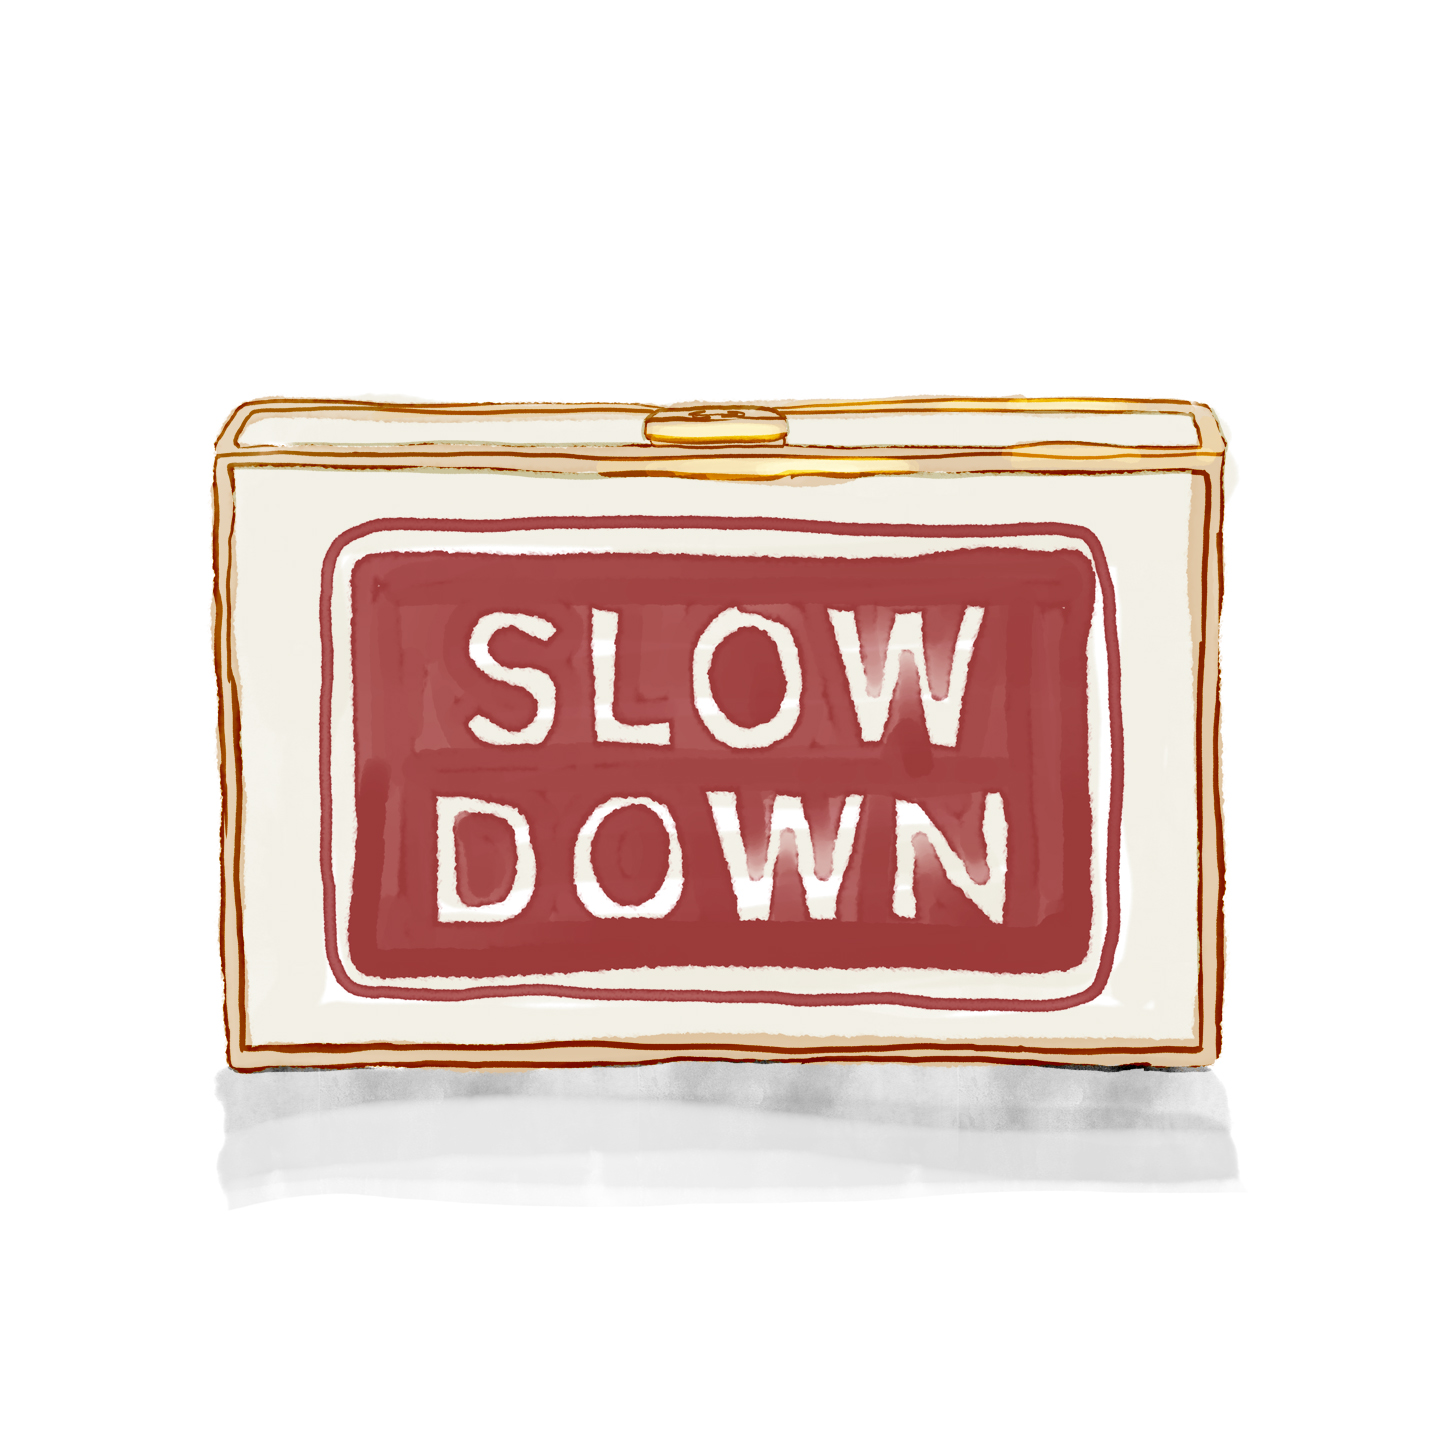 Anya_Hindmarch's_clow_down_clutch